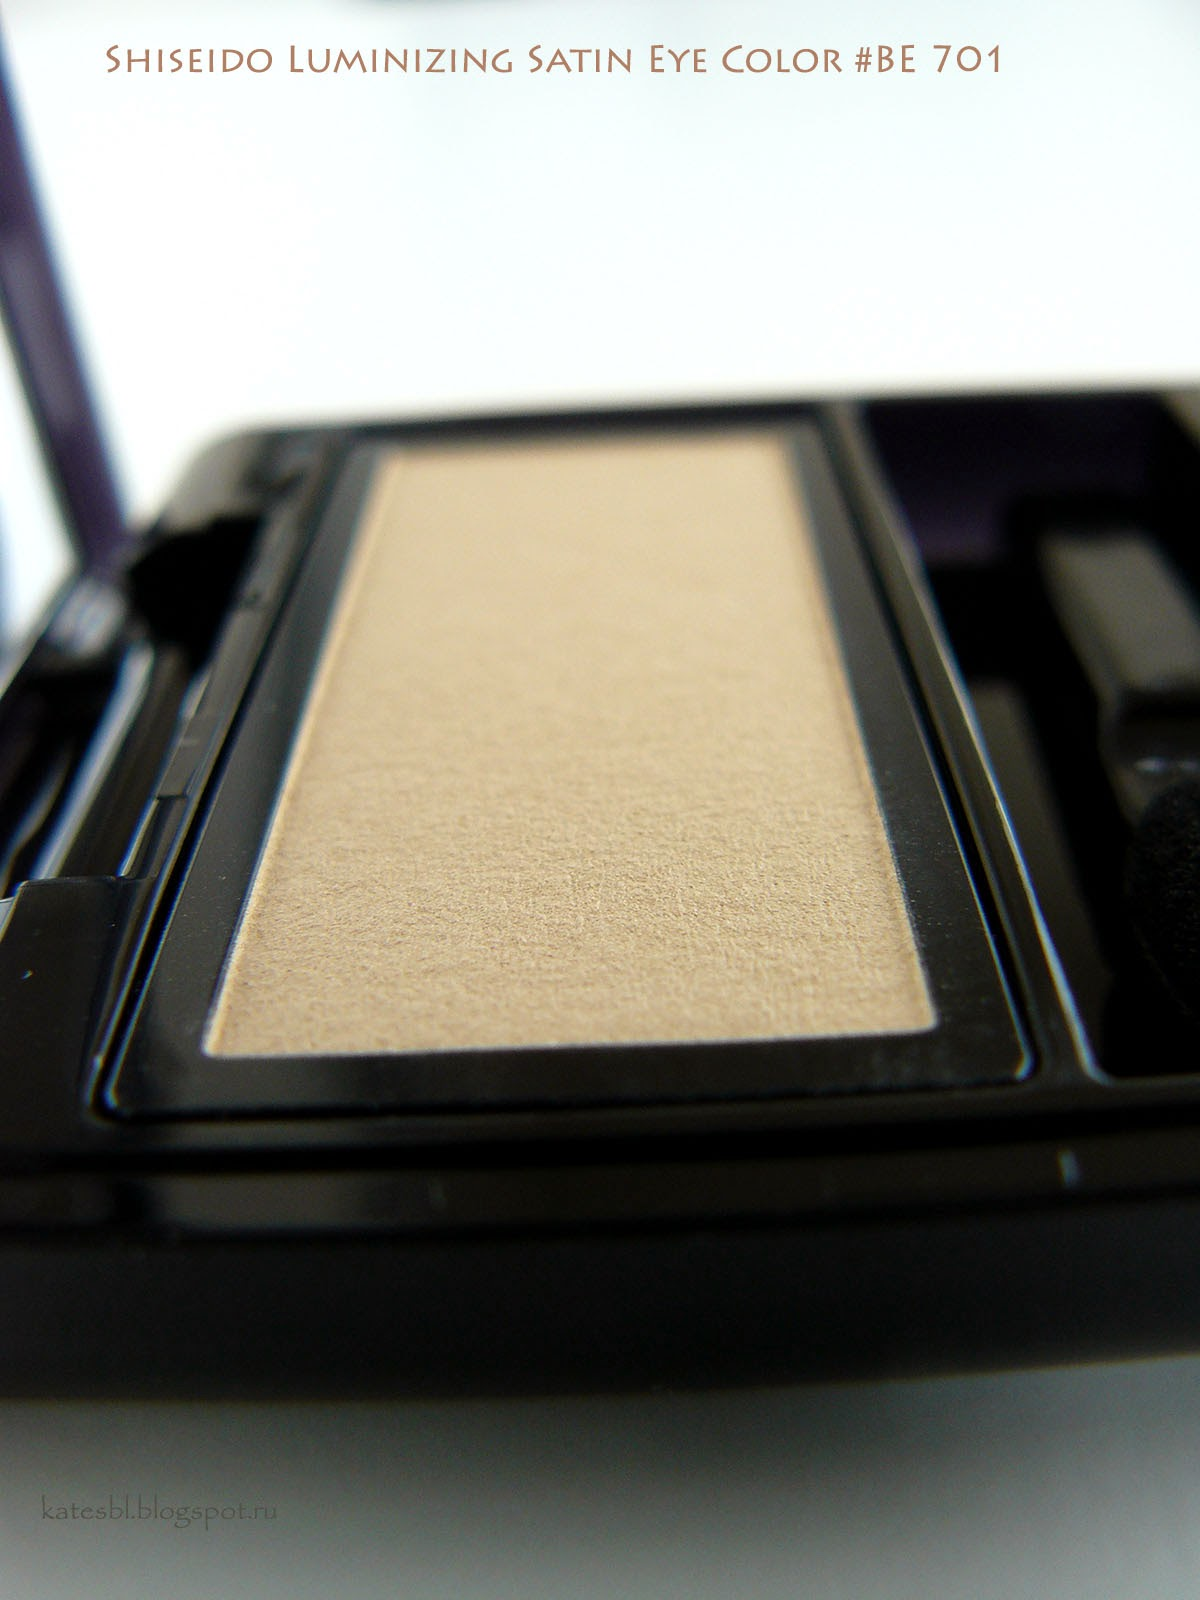 Shiseido Luminizing Satin Eye Color #BE 701